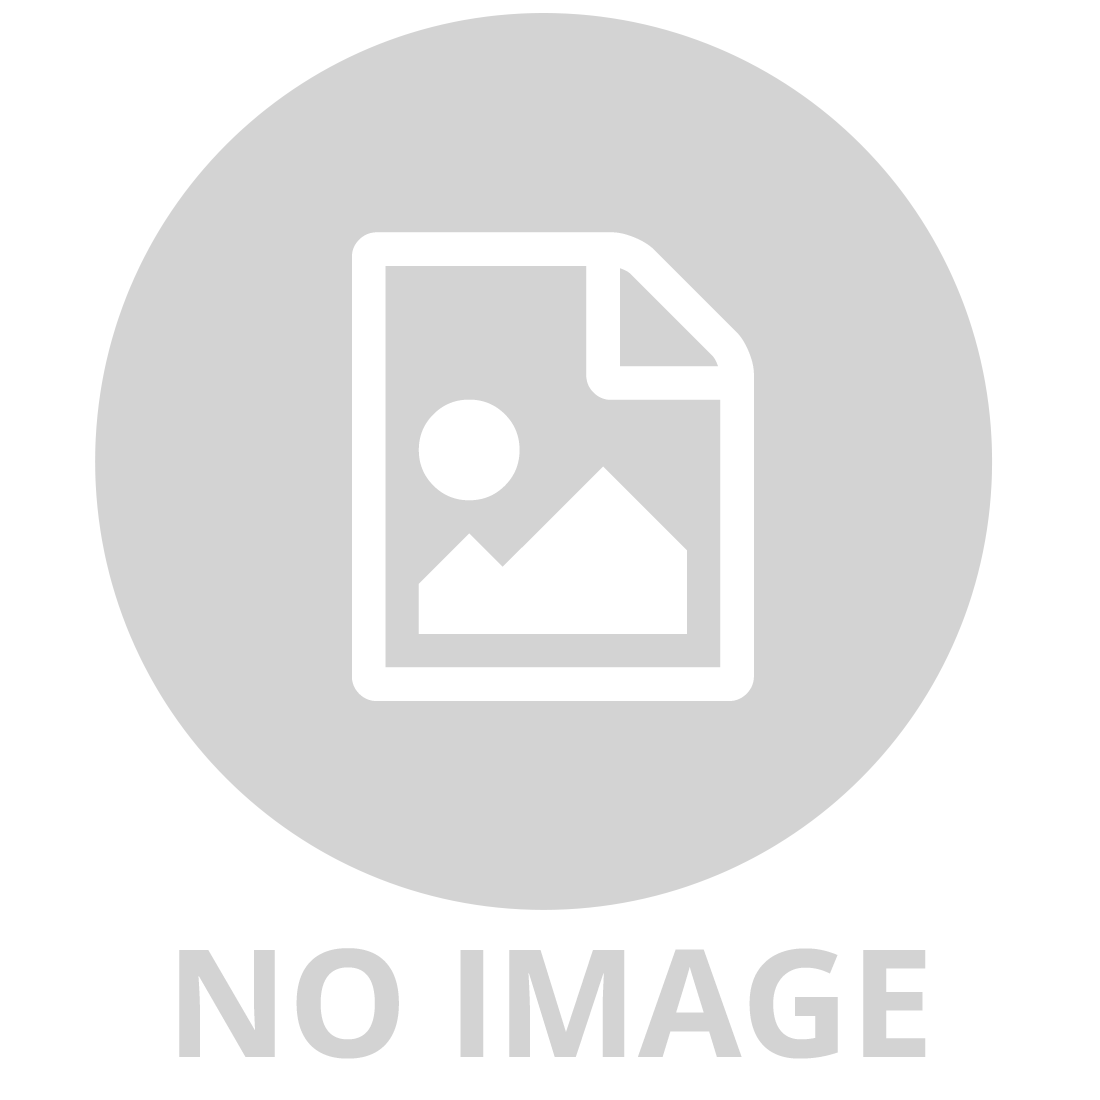 CAT METAL MACHINES DIE CAST D11T BULLDOZER 1:63 SCALE